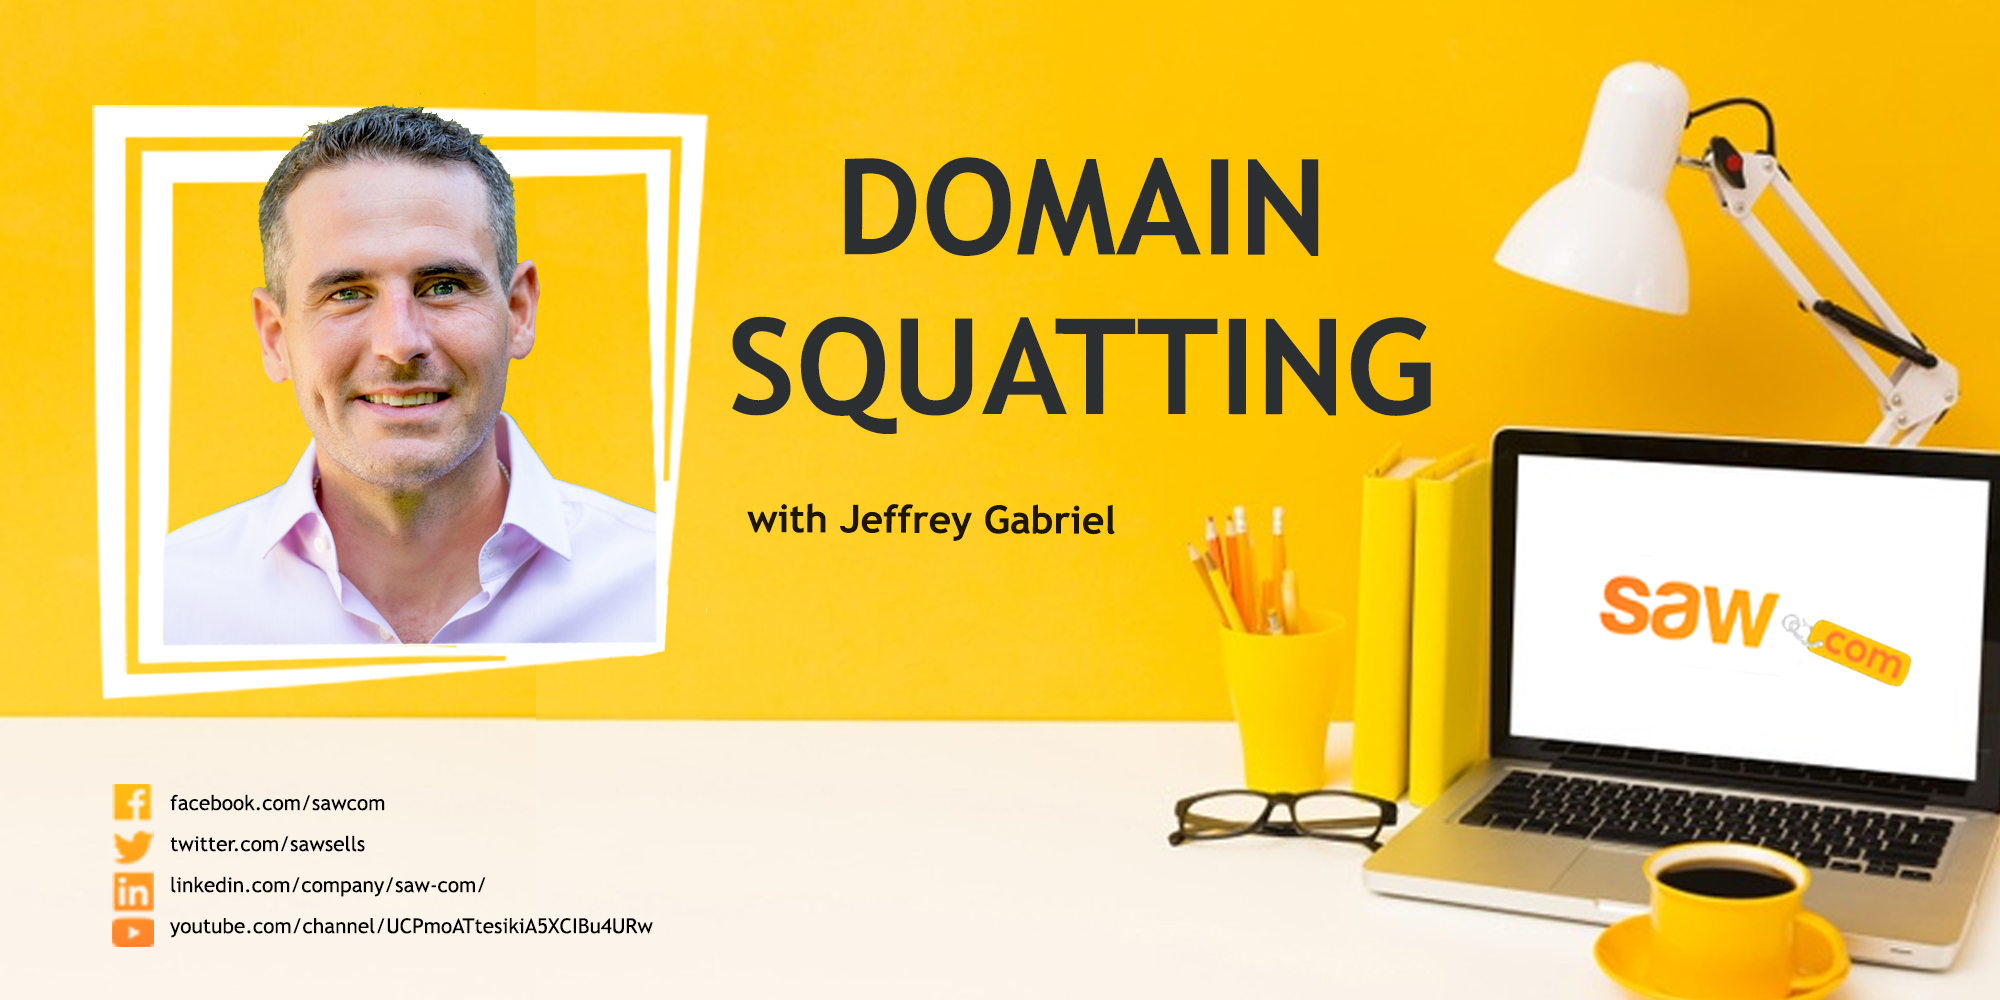 Co-Founder on Forbes writing about Domain Squatting